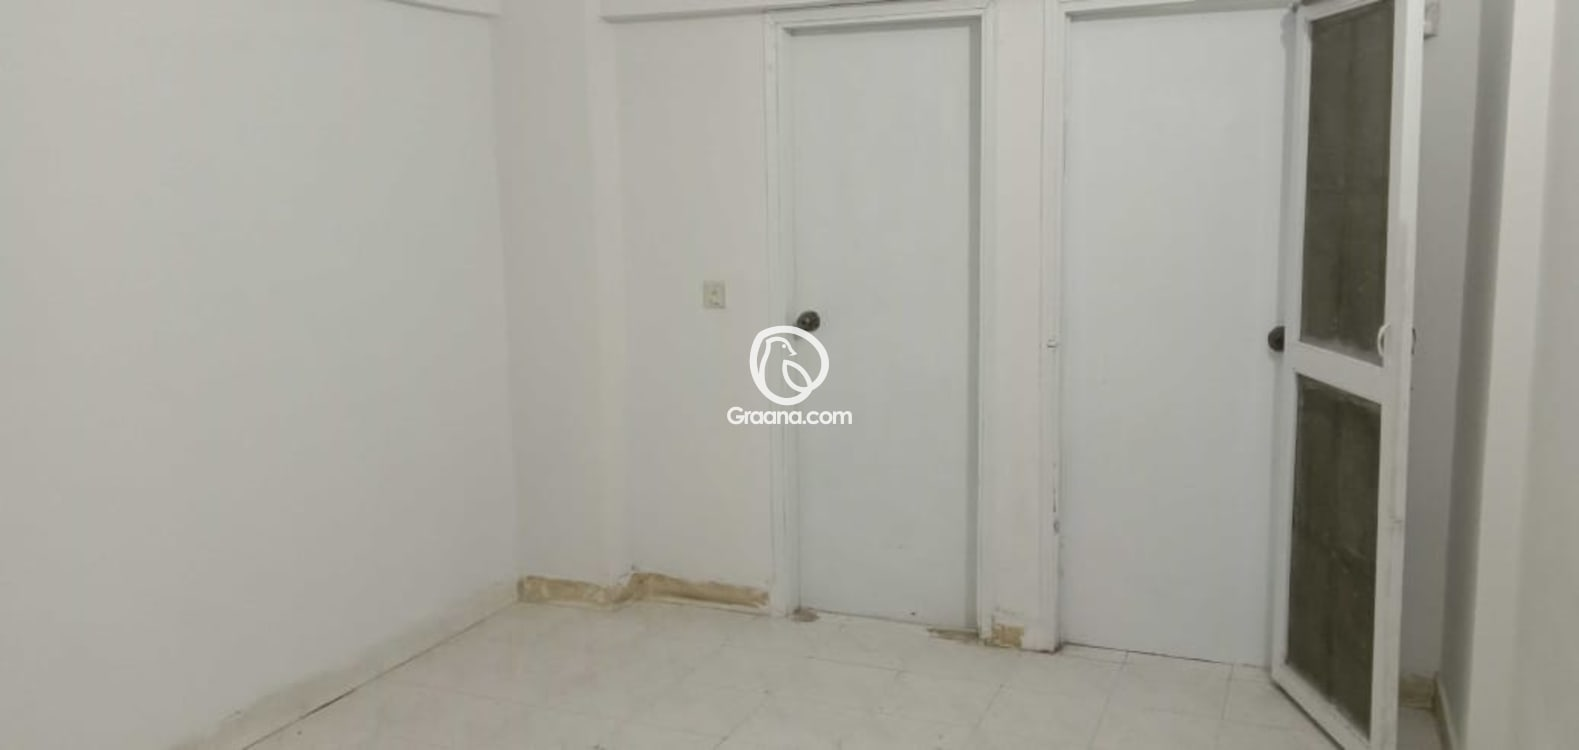 400 Sqyd  House for Commercial Purpose for Rent  | Graana.com